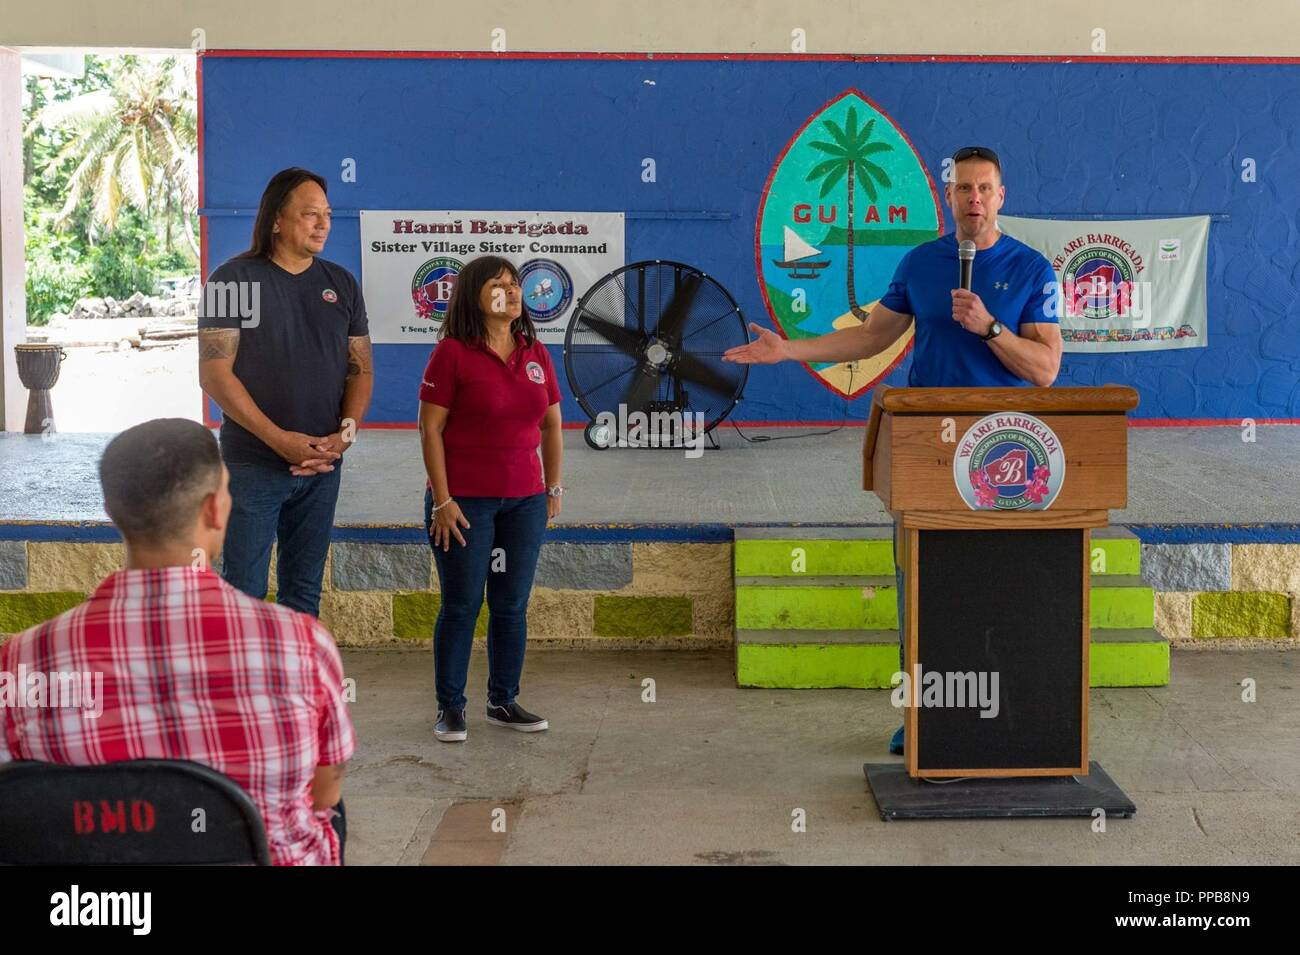 BARRIGADA, Guam (Aug. 18, 2018) Capt. Steven Stasick, commodore 30th Naval Construction Regiment (30NCR), thanks Barrigada's mayor and vice mayor for conducting a welcome fiesta for the 30NCR. The Village of Barrigada is 30NCR's sister village and the two will conduct community service projects and other functions together. 30NCR relocated to Guam from Port Hueneme, California, July 1. - Stock Image